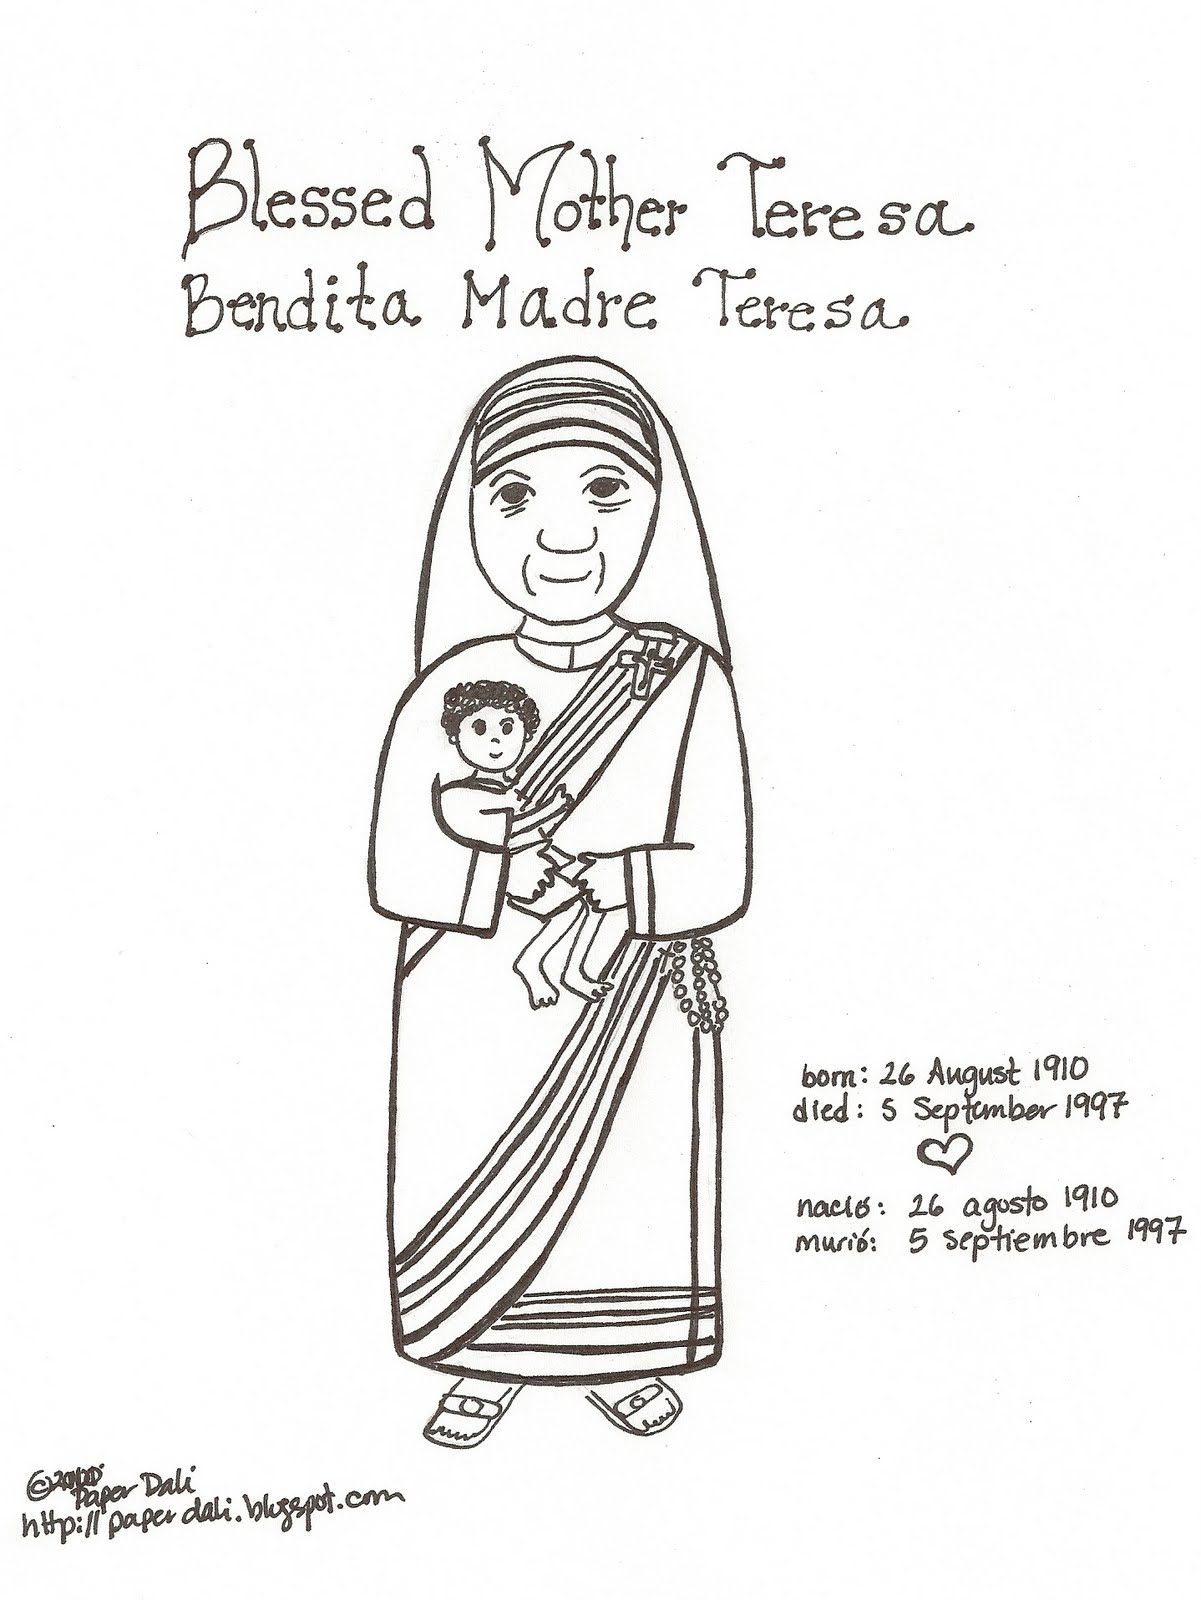 I Also Put Together My Favorite Mother Teresa Quotes With Some Drawings For A Printable Sheet You Can Color And Cut Them Out As Notes